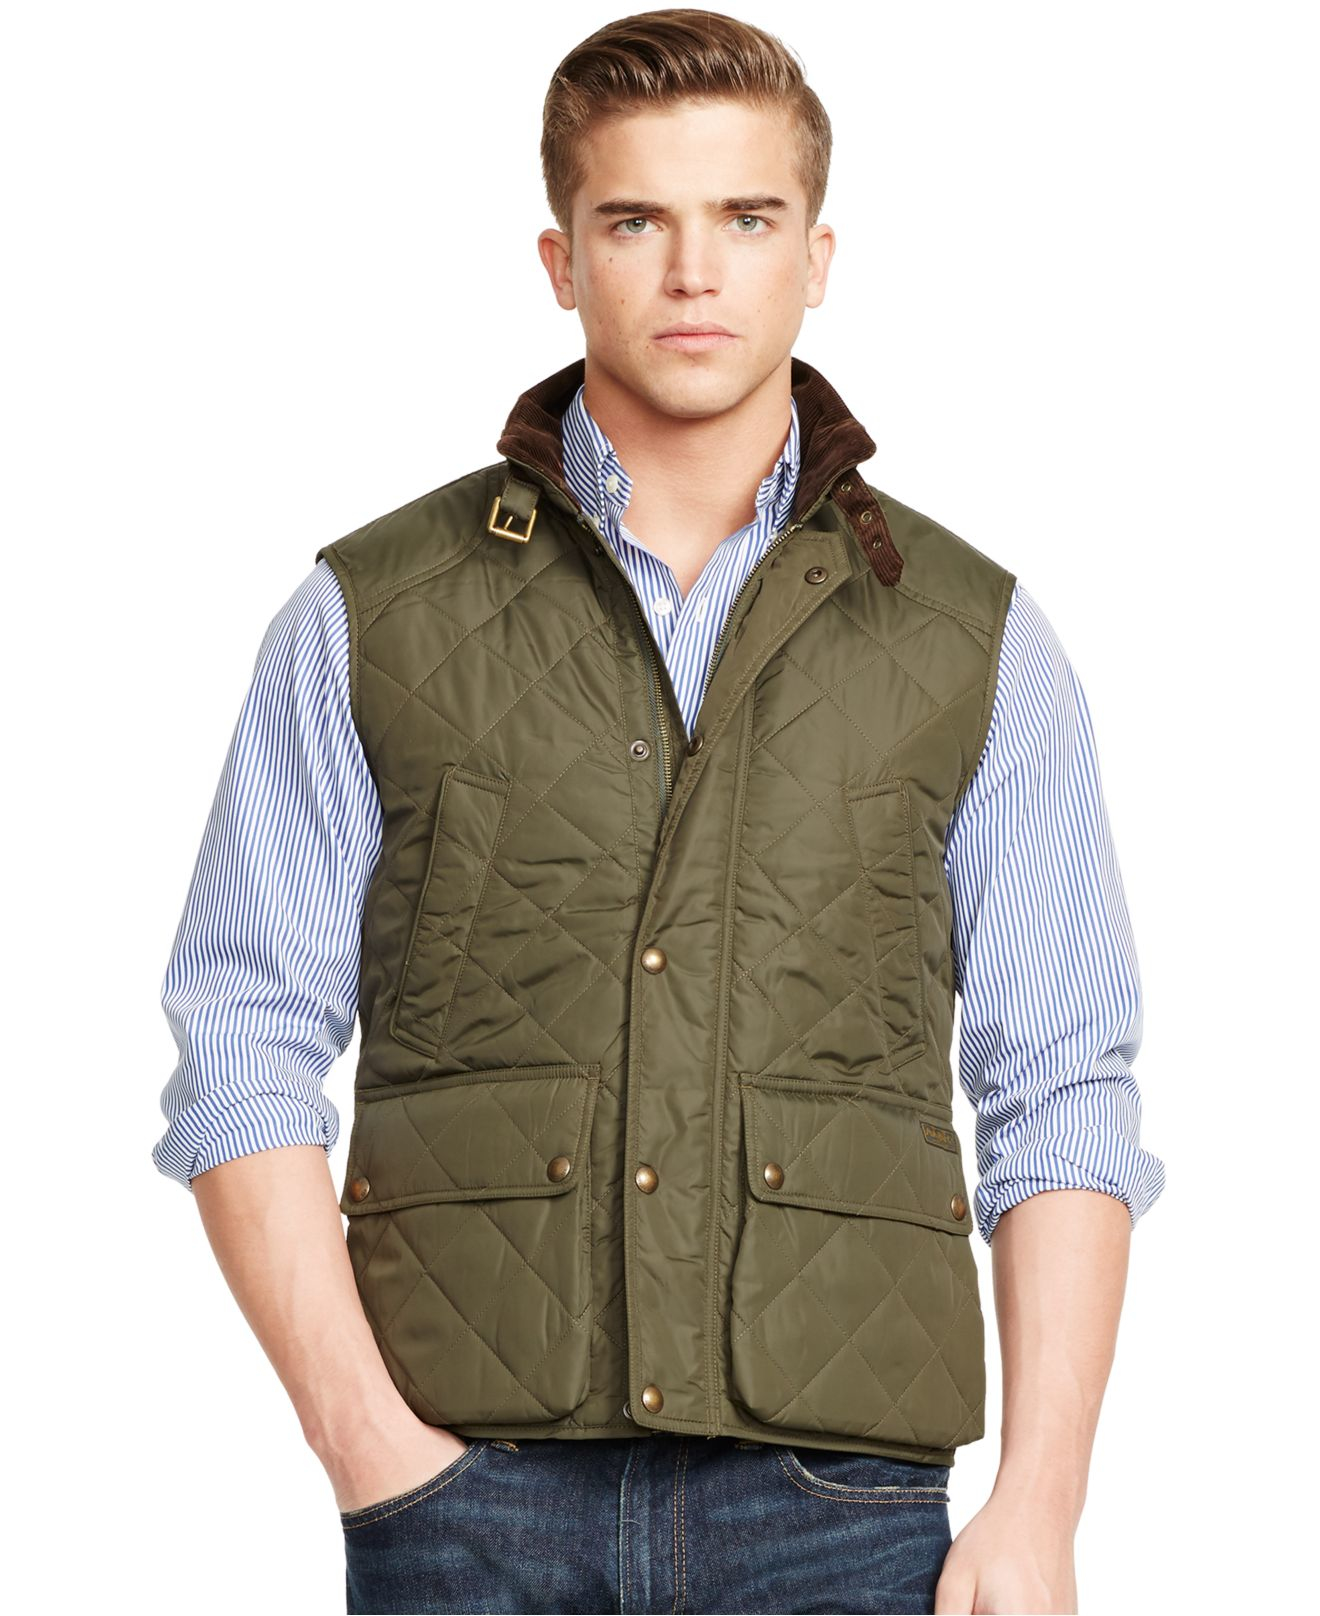 Lauren For Polo Ralph Quilted In Lyst Men Vest Green 8wPZNn0OkX